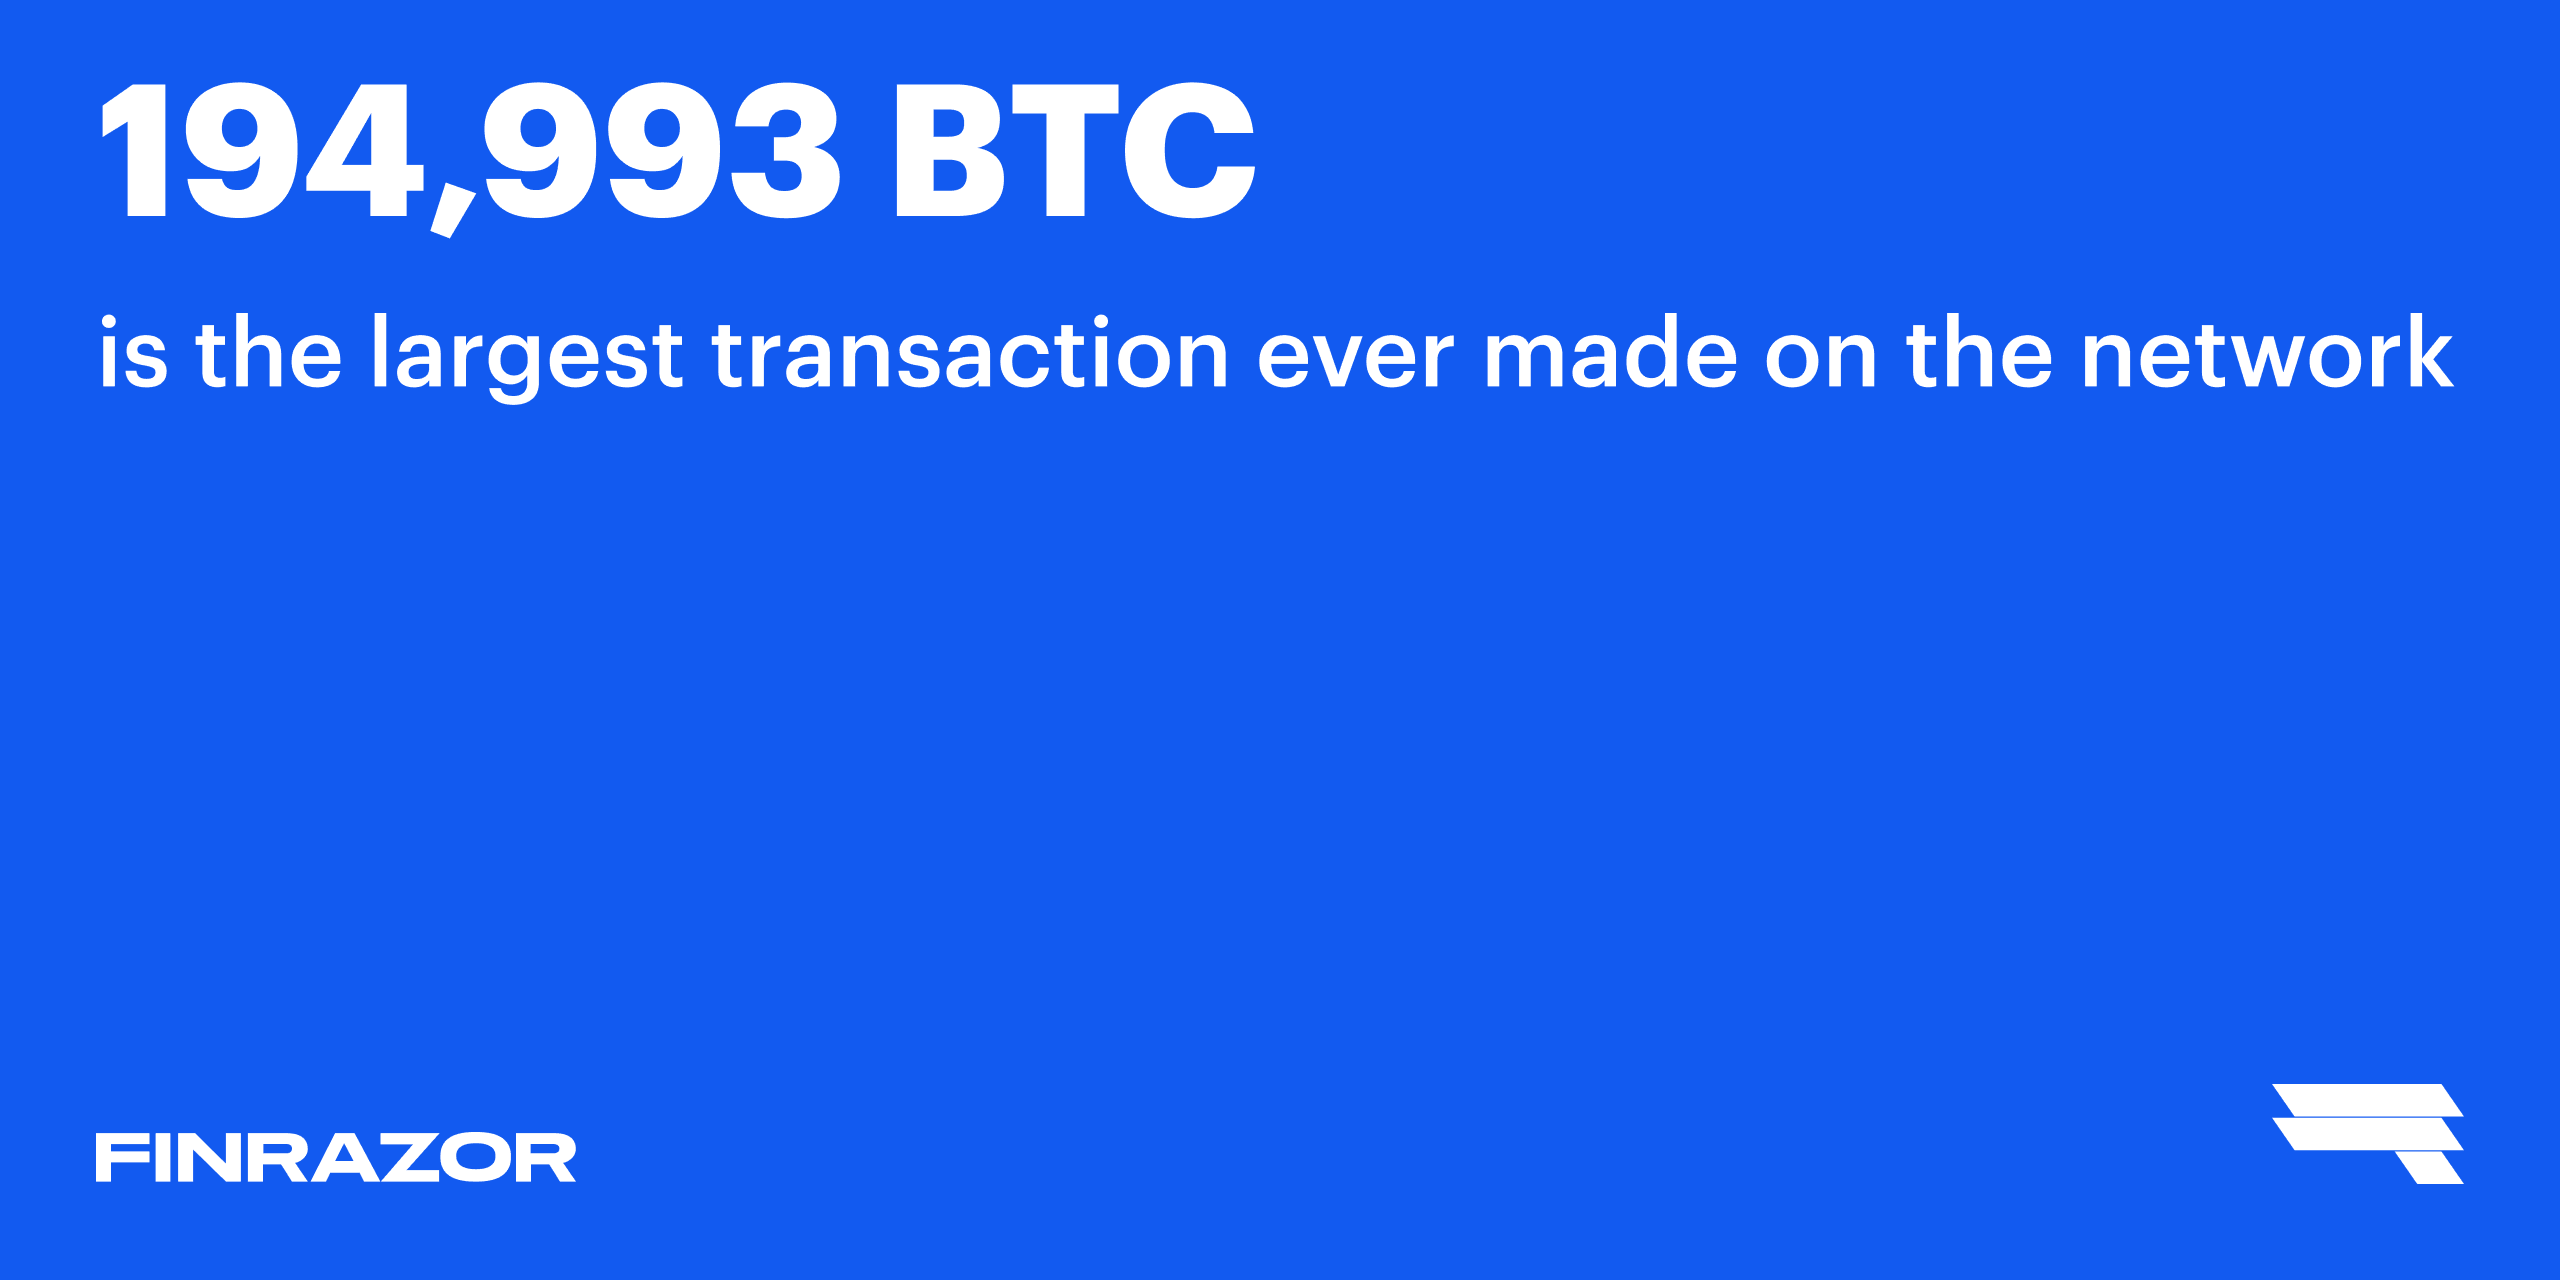 What's the size of the largest transaction ever made?